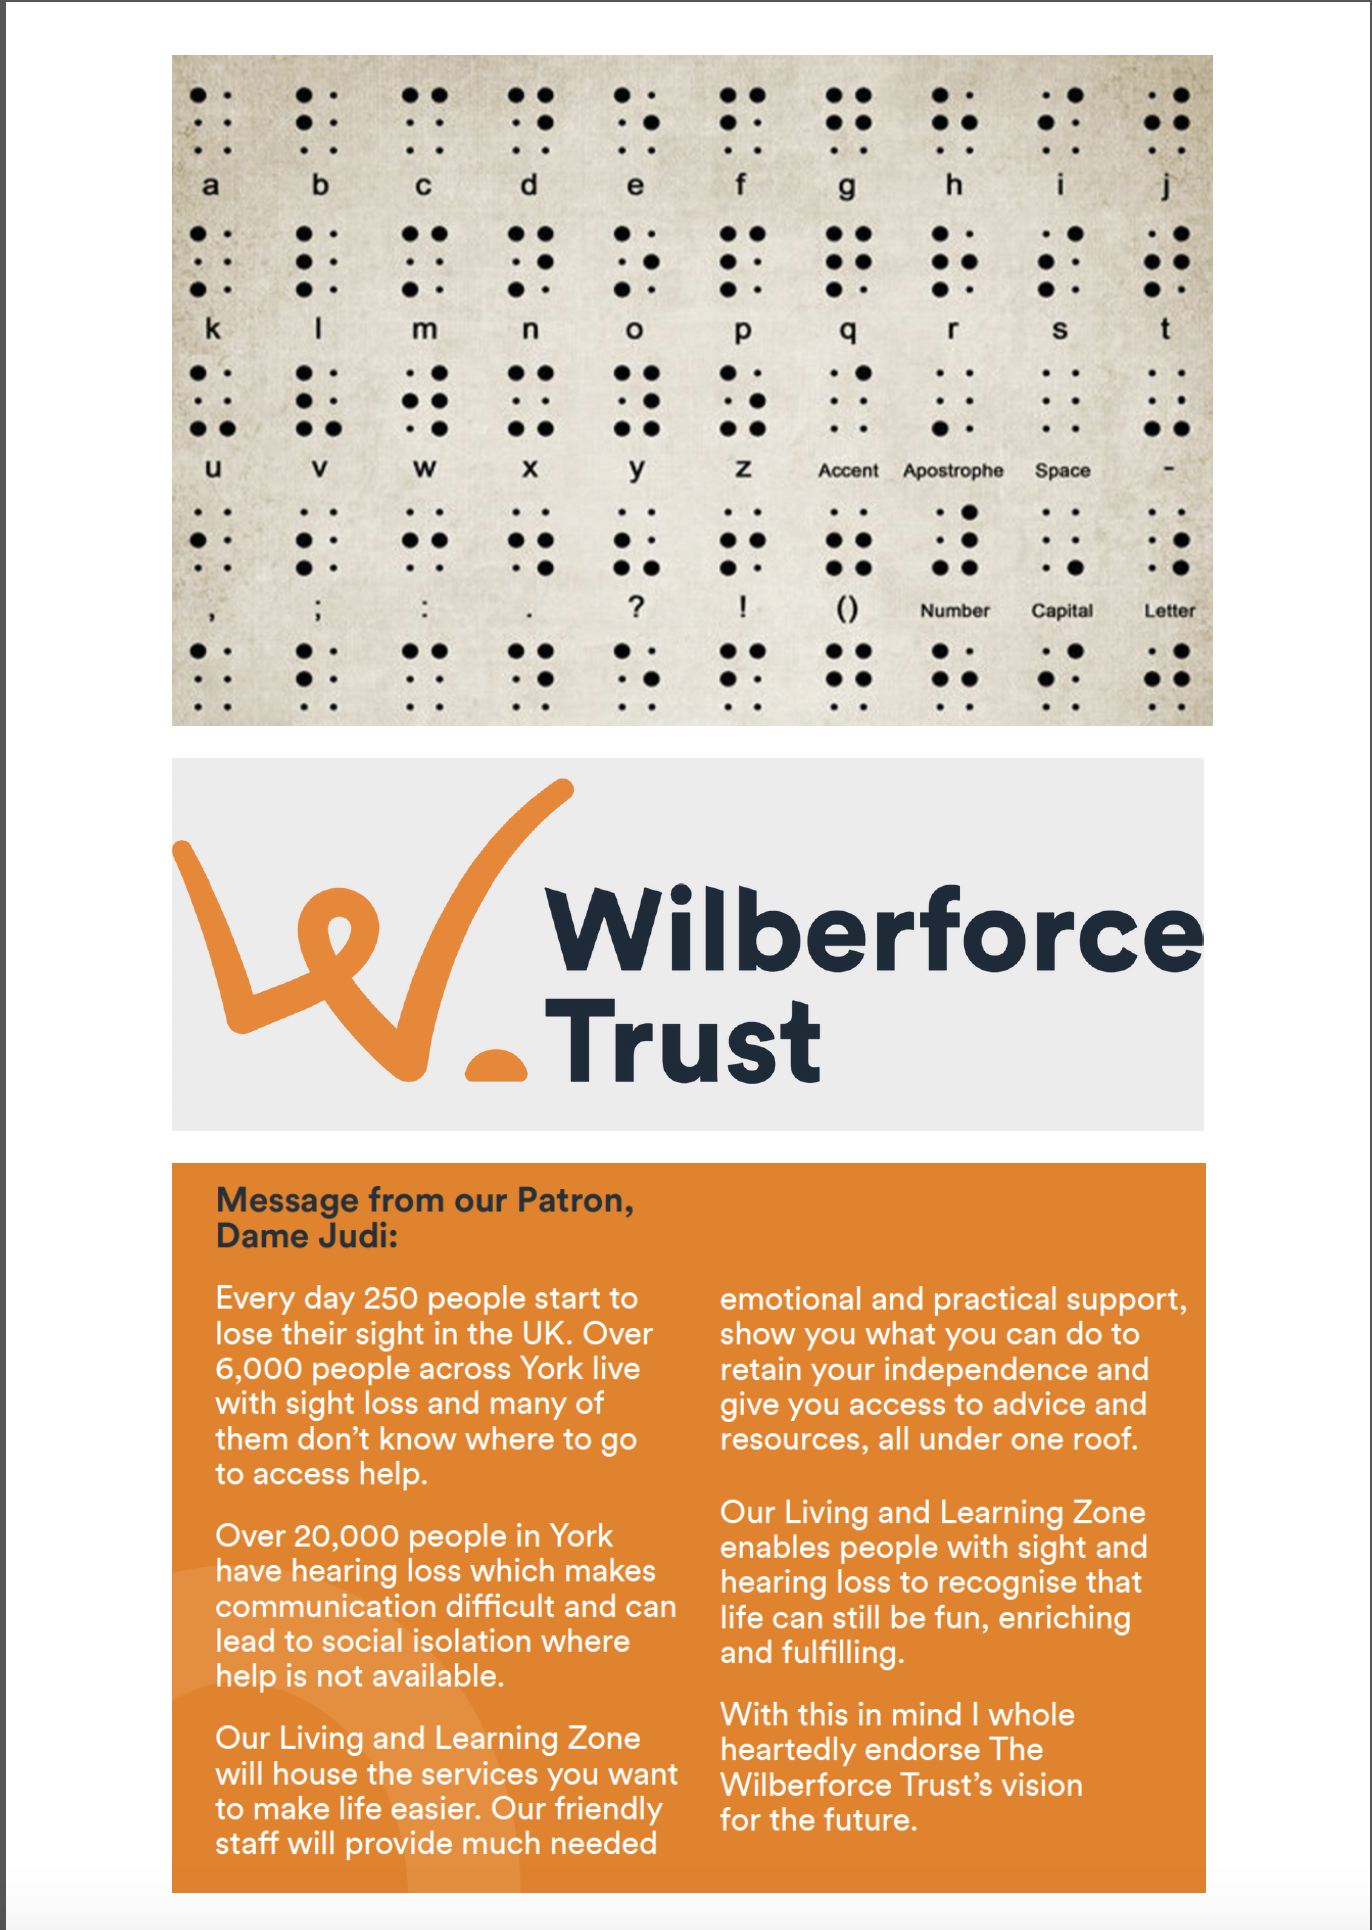 A message from the good people at Wilberforce who help the visually impaired, like my little girl.  Also, if you know anyone with a visual impairment, let them know that we have a Braille menu now. And we offer them a juicy discount too